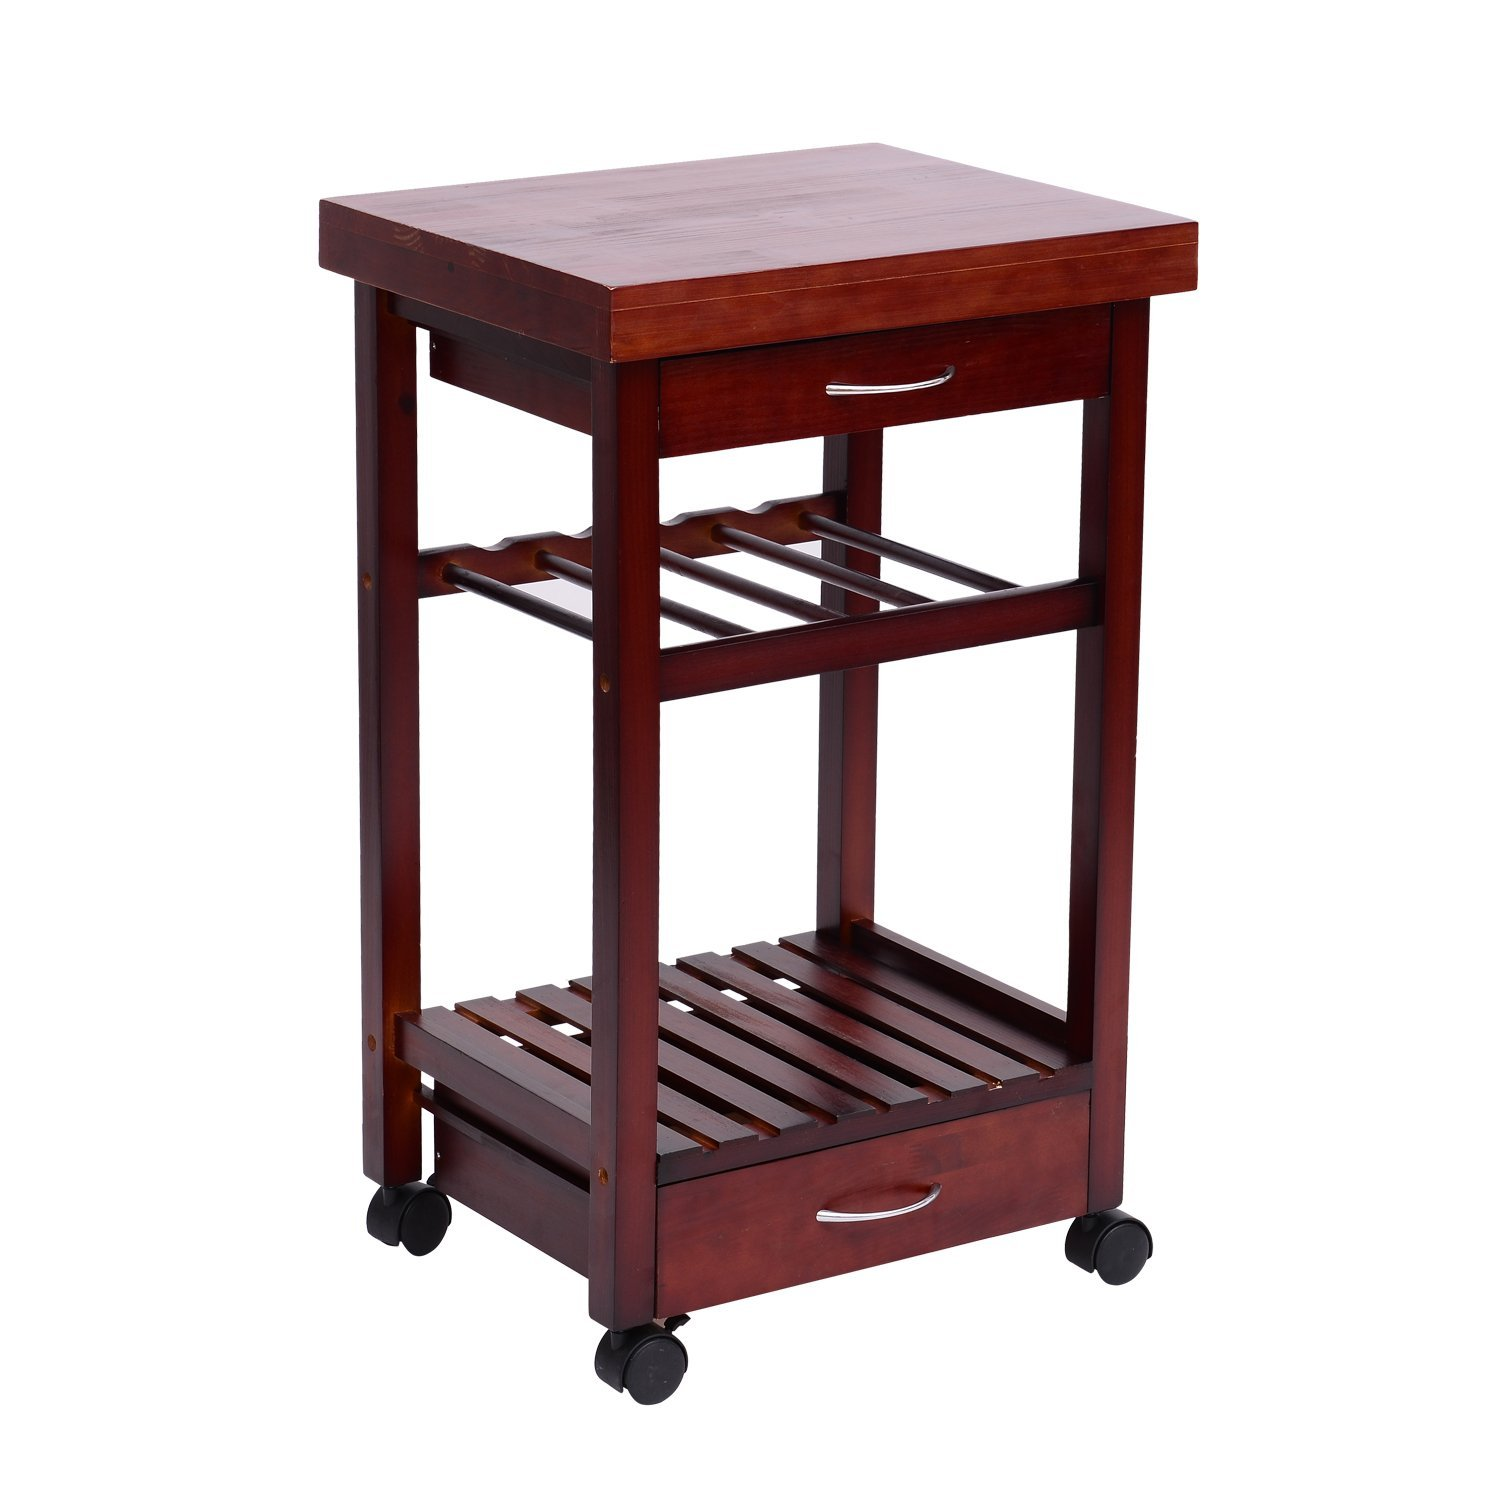 Homcom 32 Wooden Storage Rolling Kitchen Cart Trolley With Drawers And Wine Rack Kitchen Islands Aosom